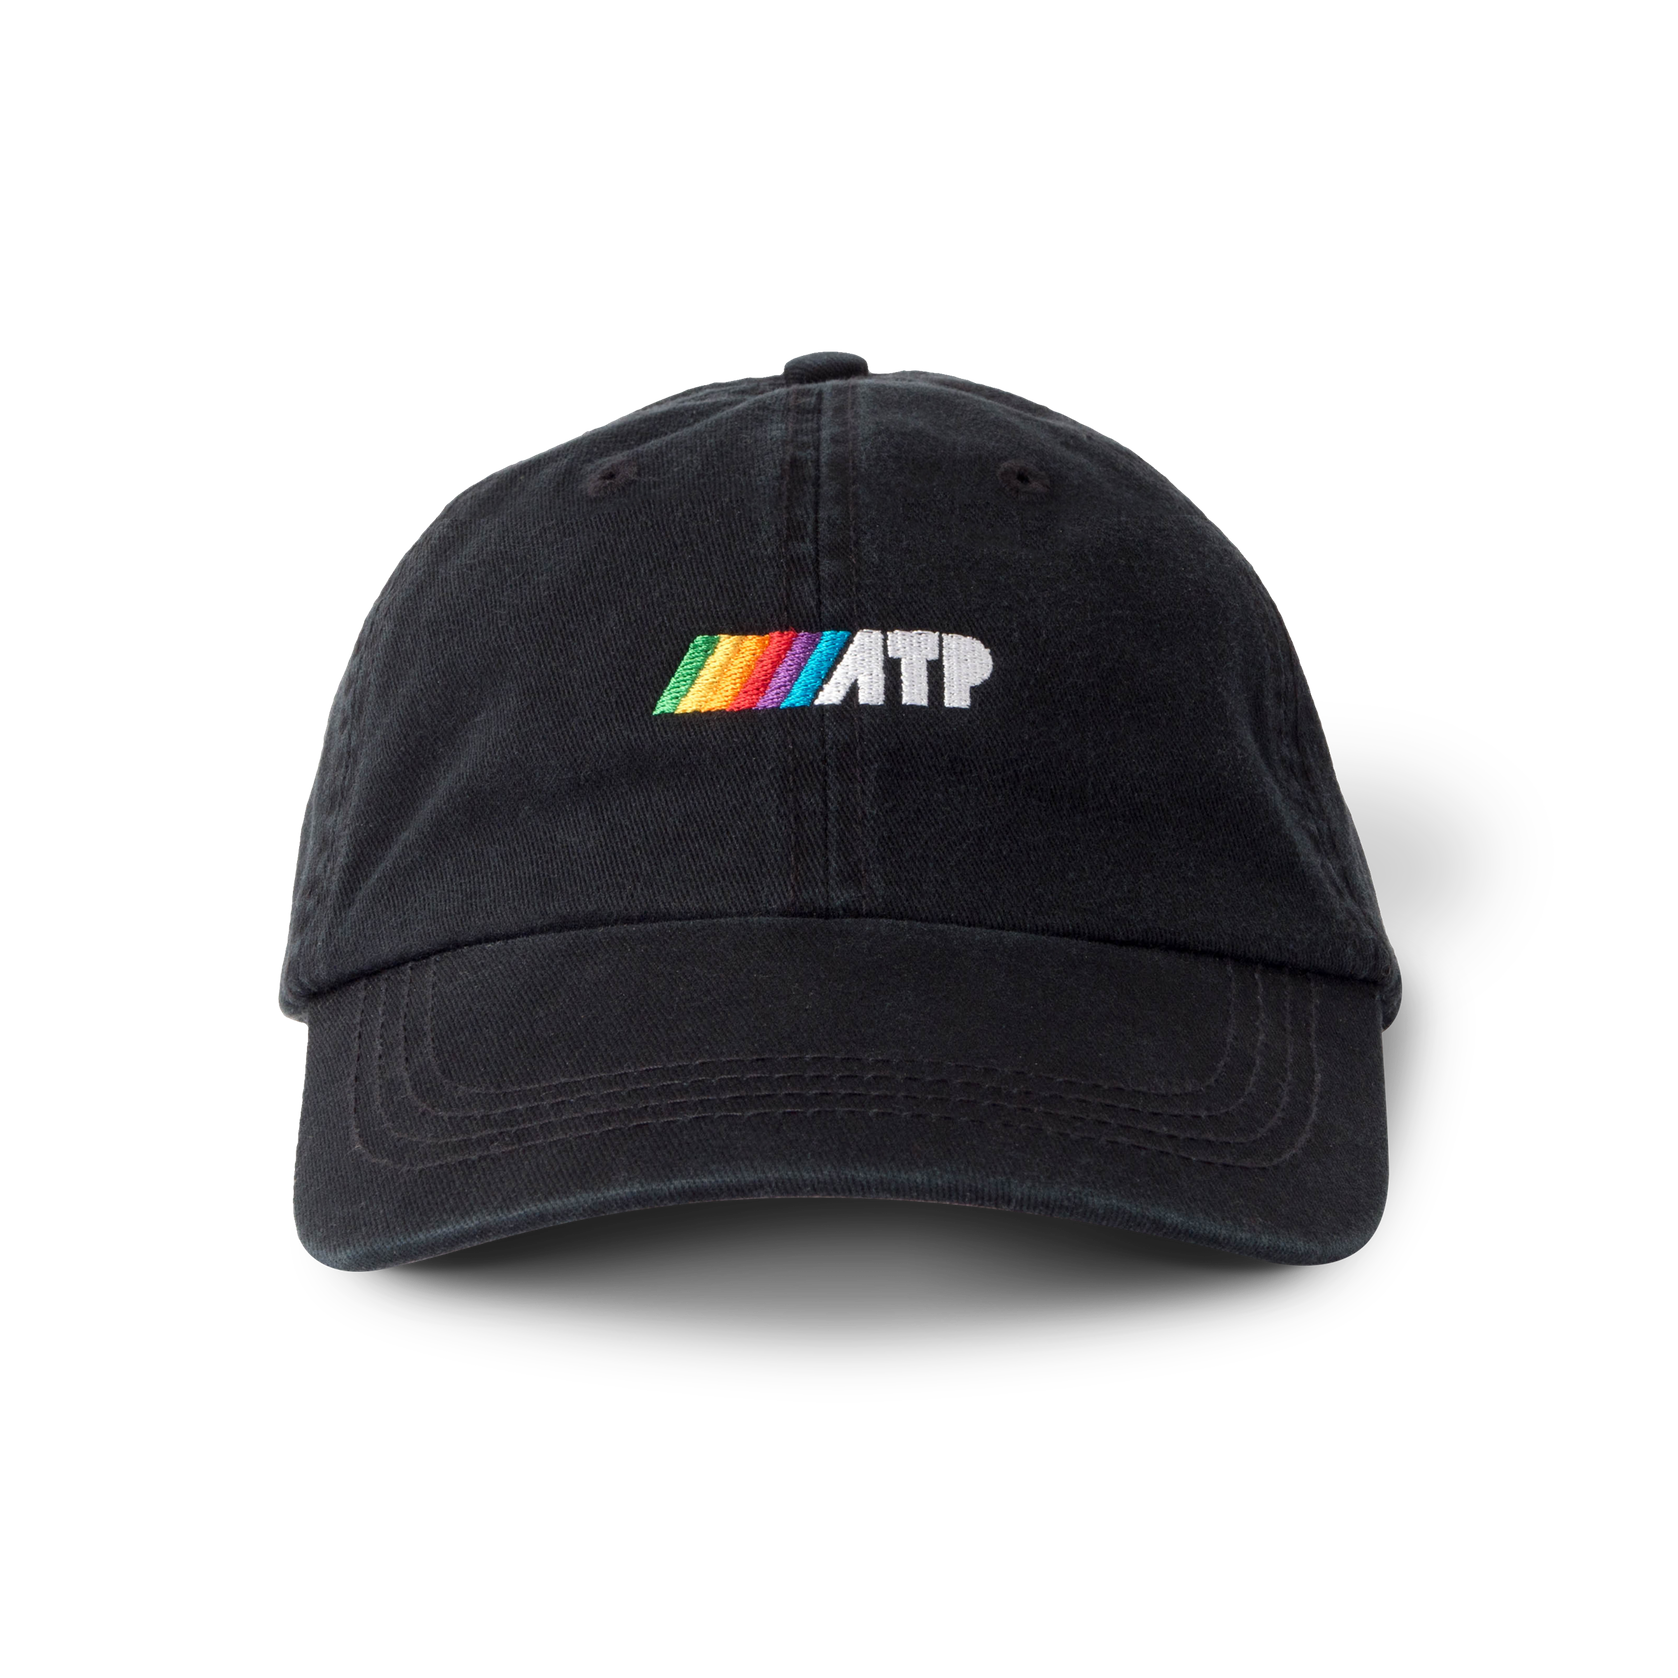 ///ATP Hat - Let the proud, embroidered, ATP logo protect your head from the harmful rays of the sun.Available in black and coal in 100% cotton.Buy now!